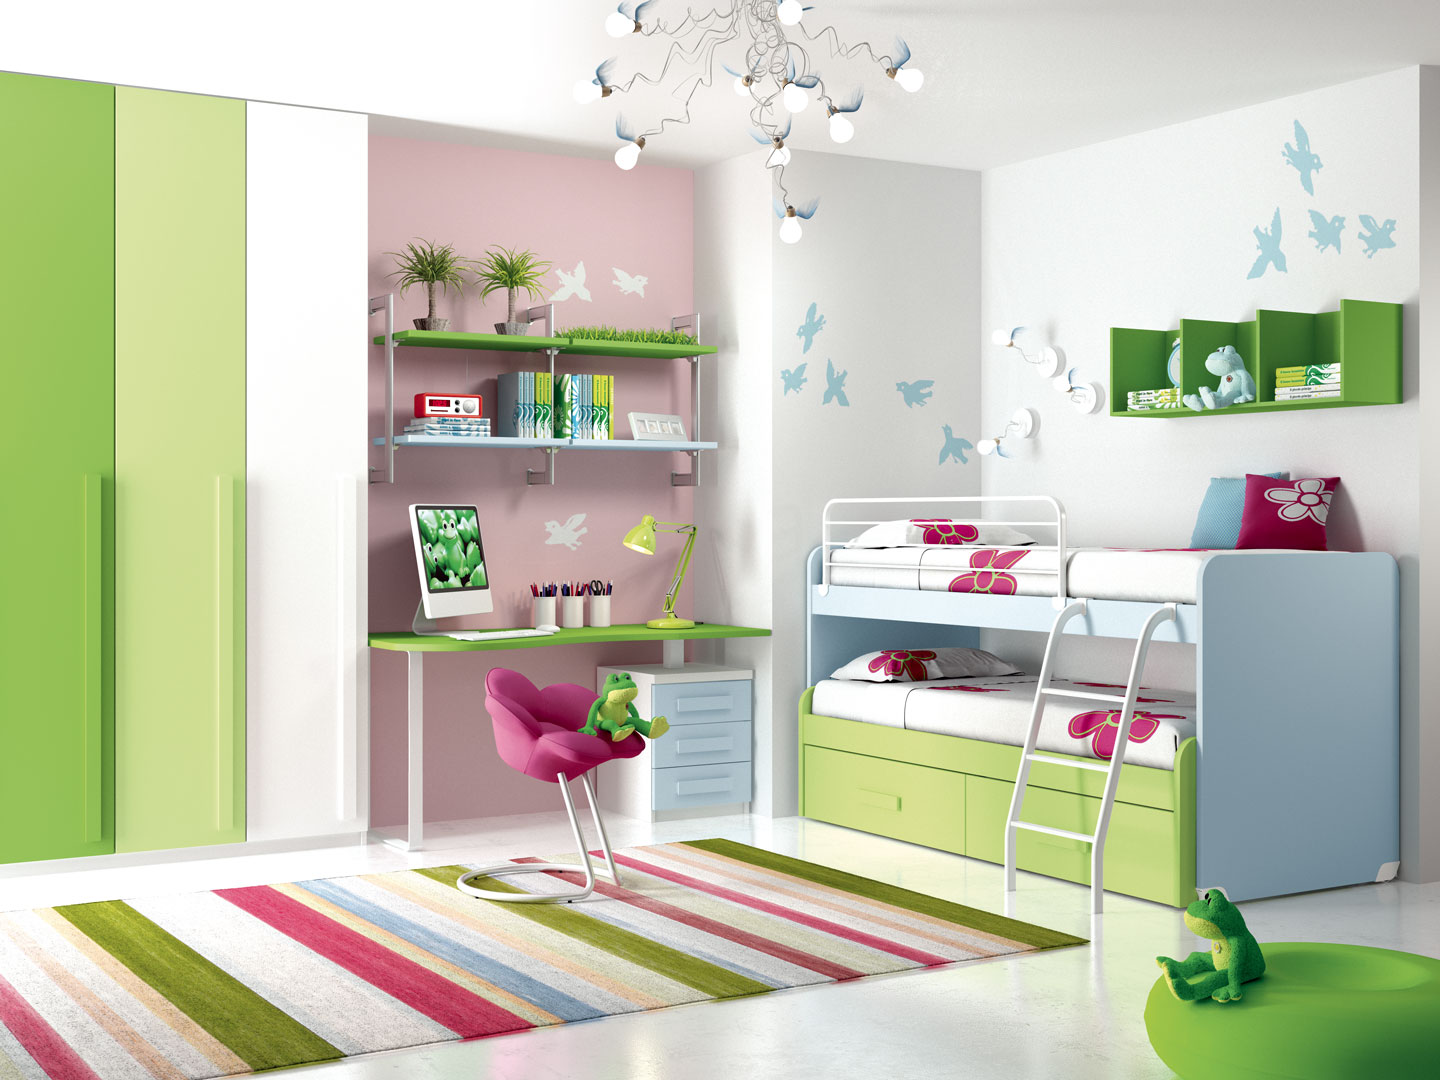 Camerette made in italy ima mobili composizione 3 newformsdesign camerette newformsdesign - Mobili made in italy ...